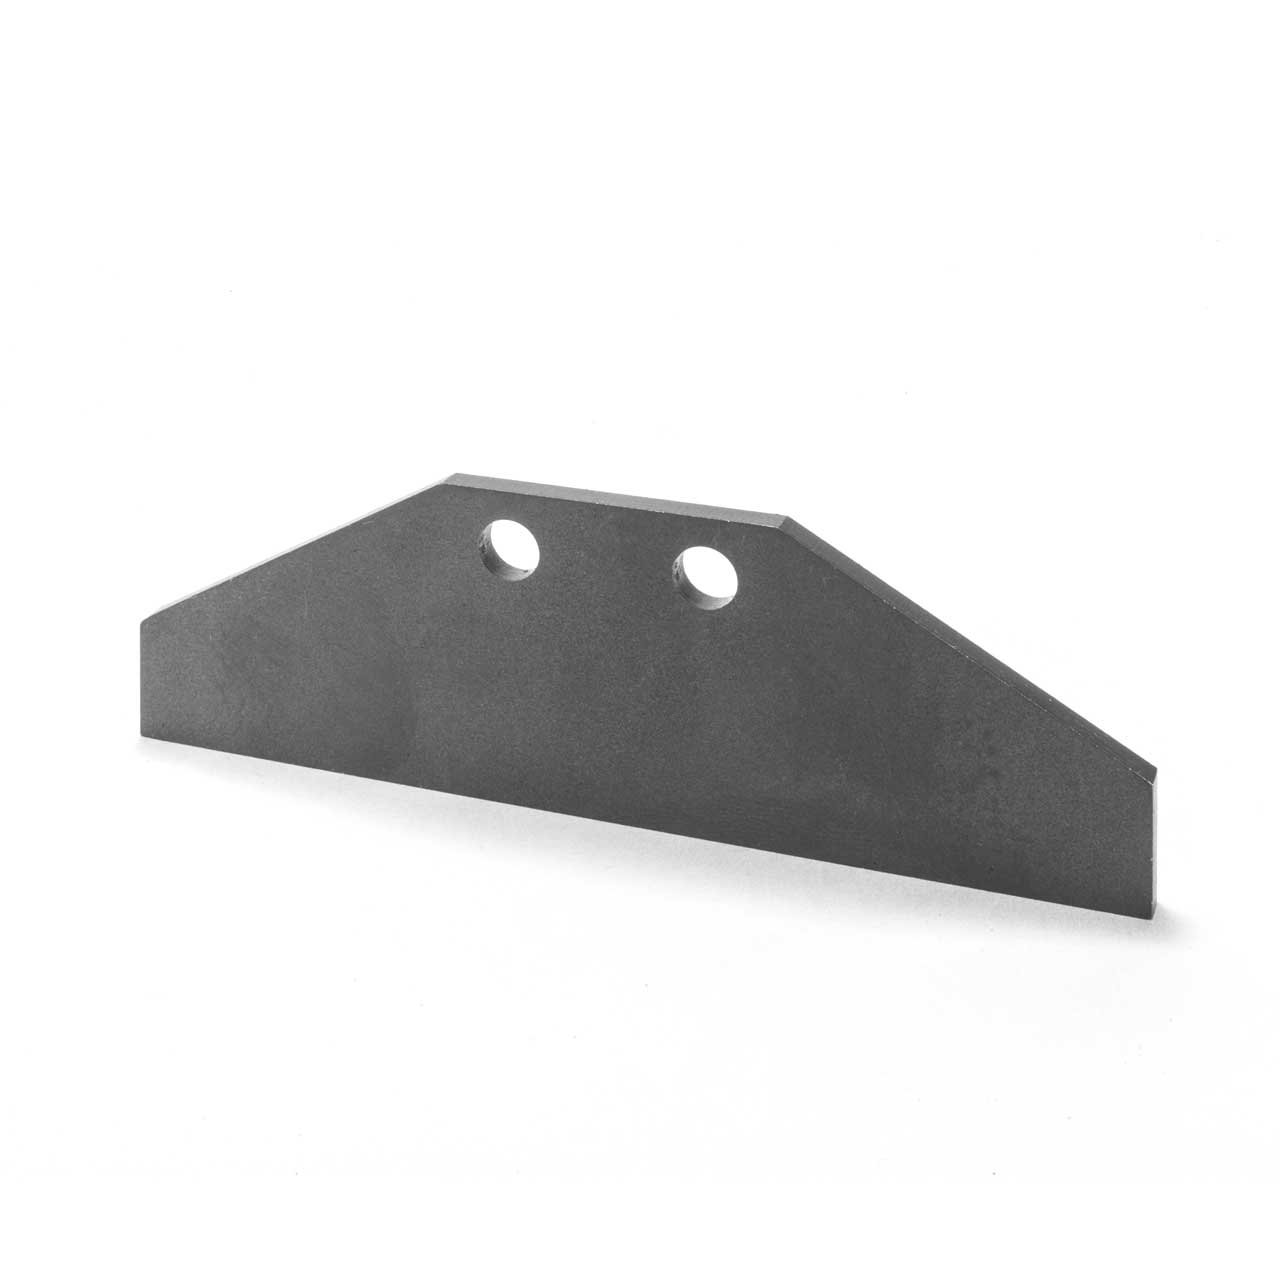 Scrape-N-Burr RNB-45 Replacement Blade 4-1/2'' by Scrape-N-Burr